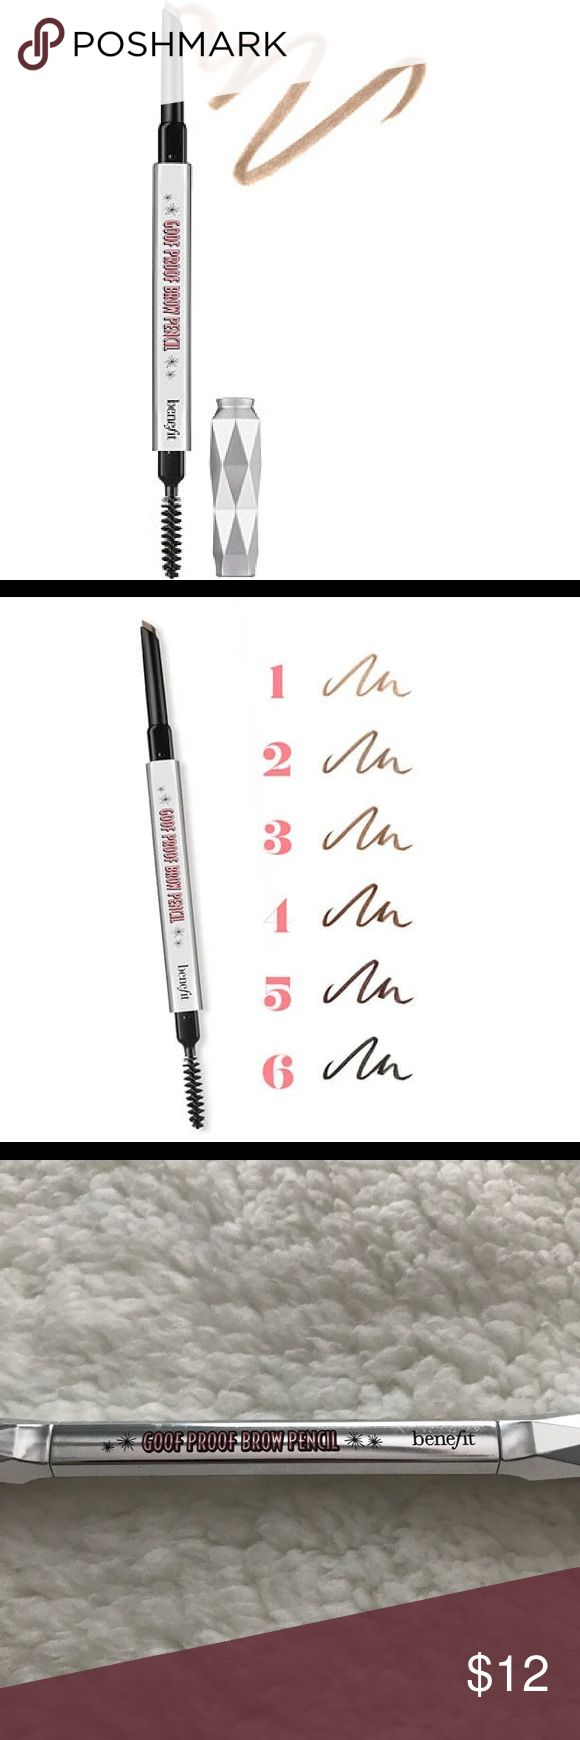 NEW Benefit Cosmetics Good Proof Brow Pencil #3 NEW Benefit goof proof dual side brow pencil in the color #3! Never used. Benefit Makeup Eyebrow Filler